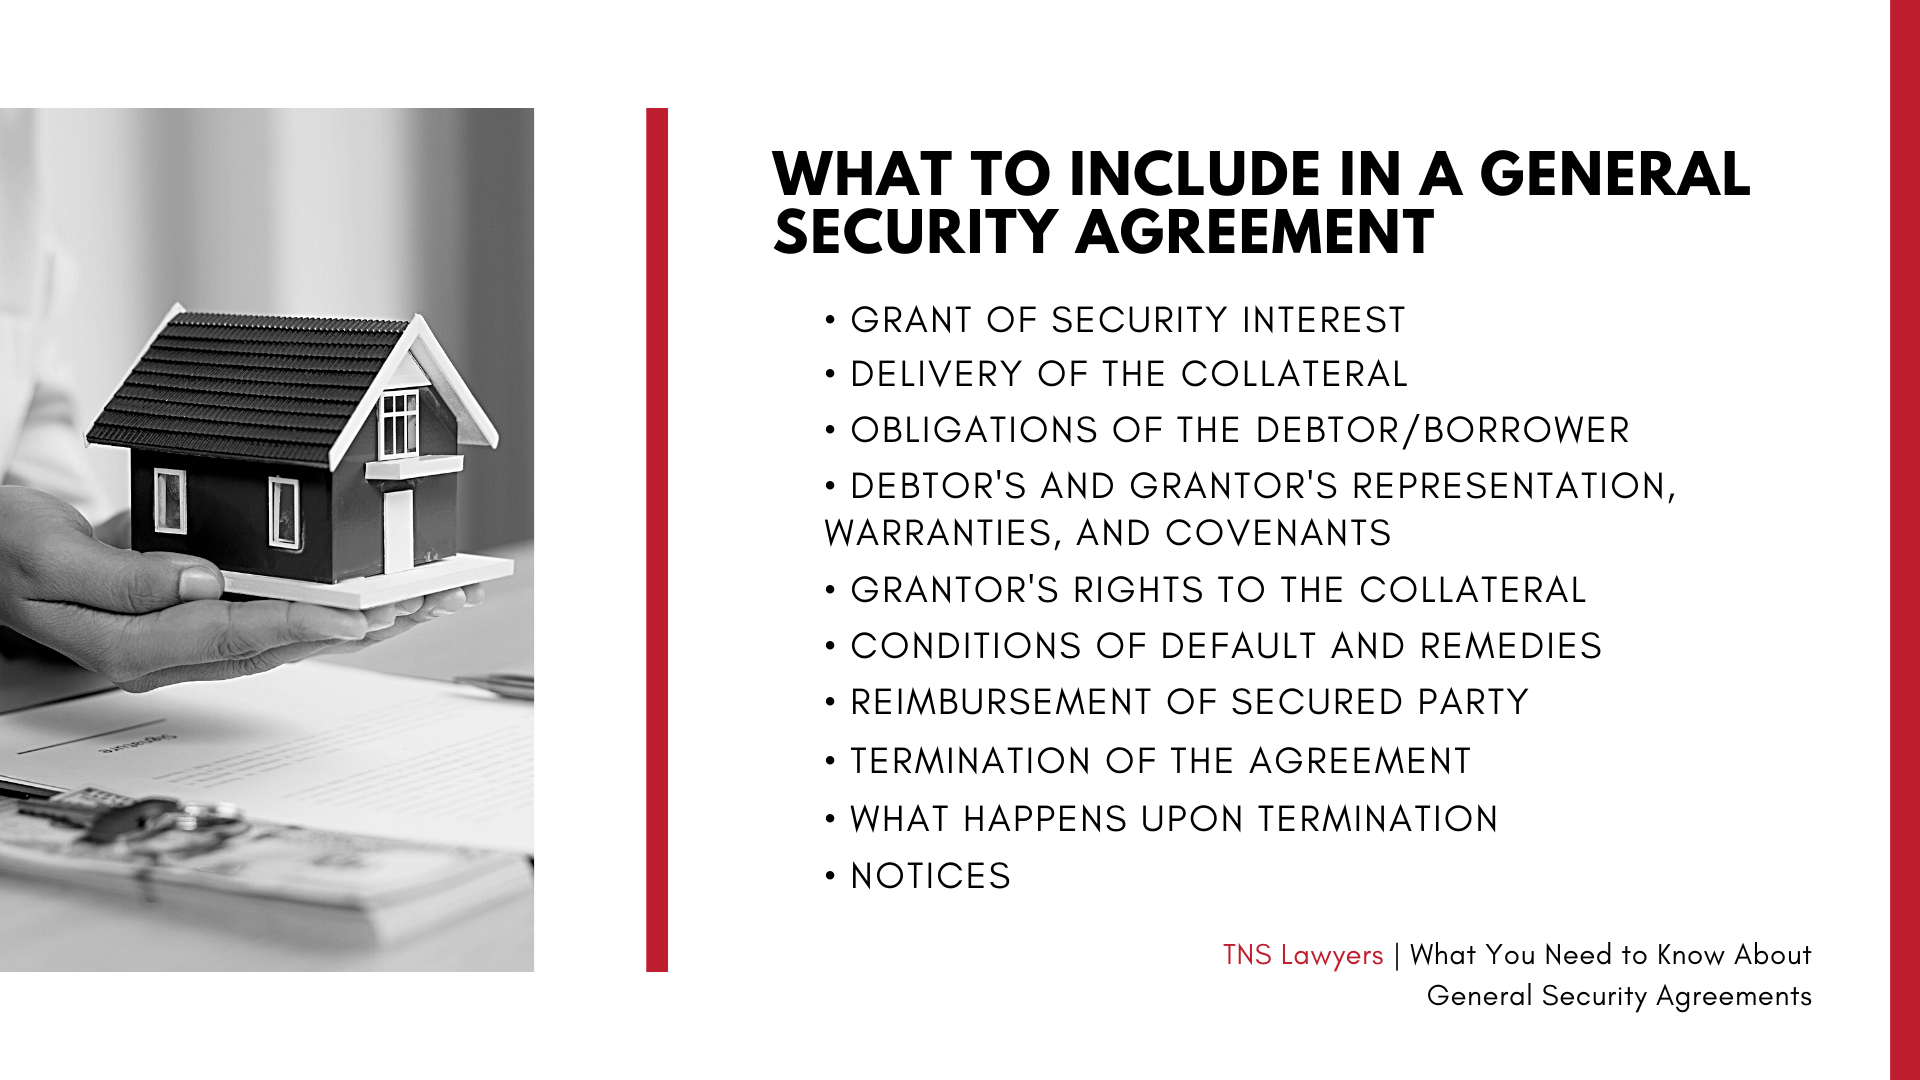 what clauses can you include in a general security agreement